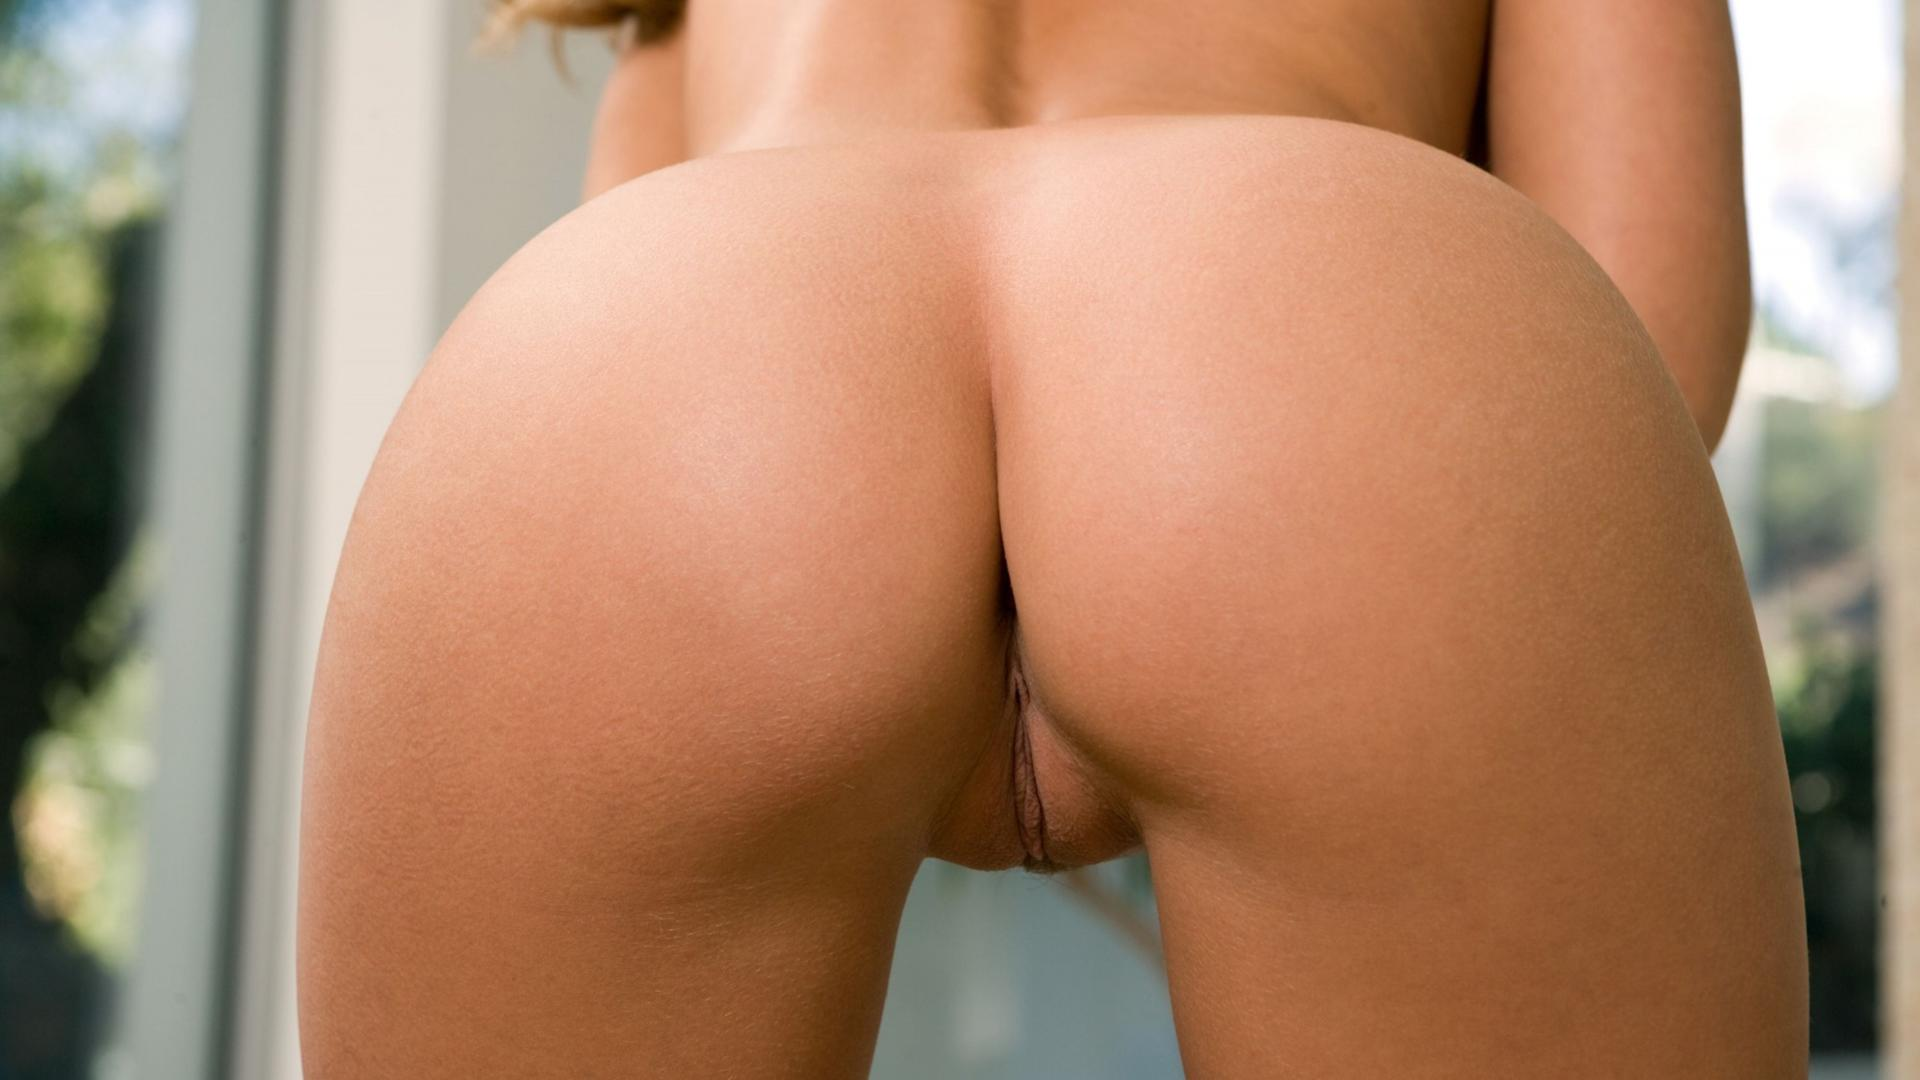 perfect girls anus nude